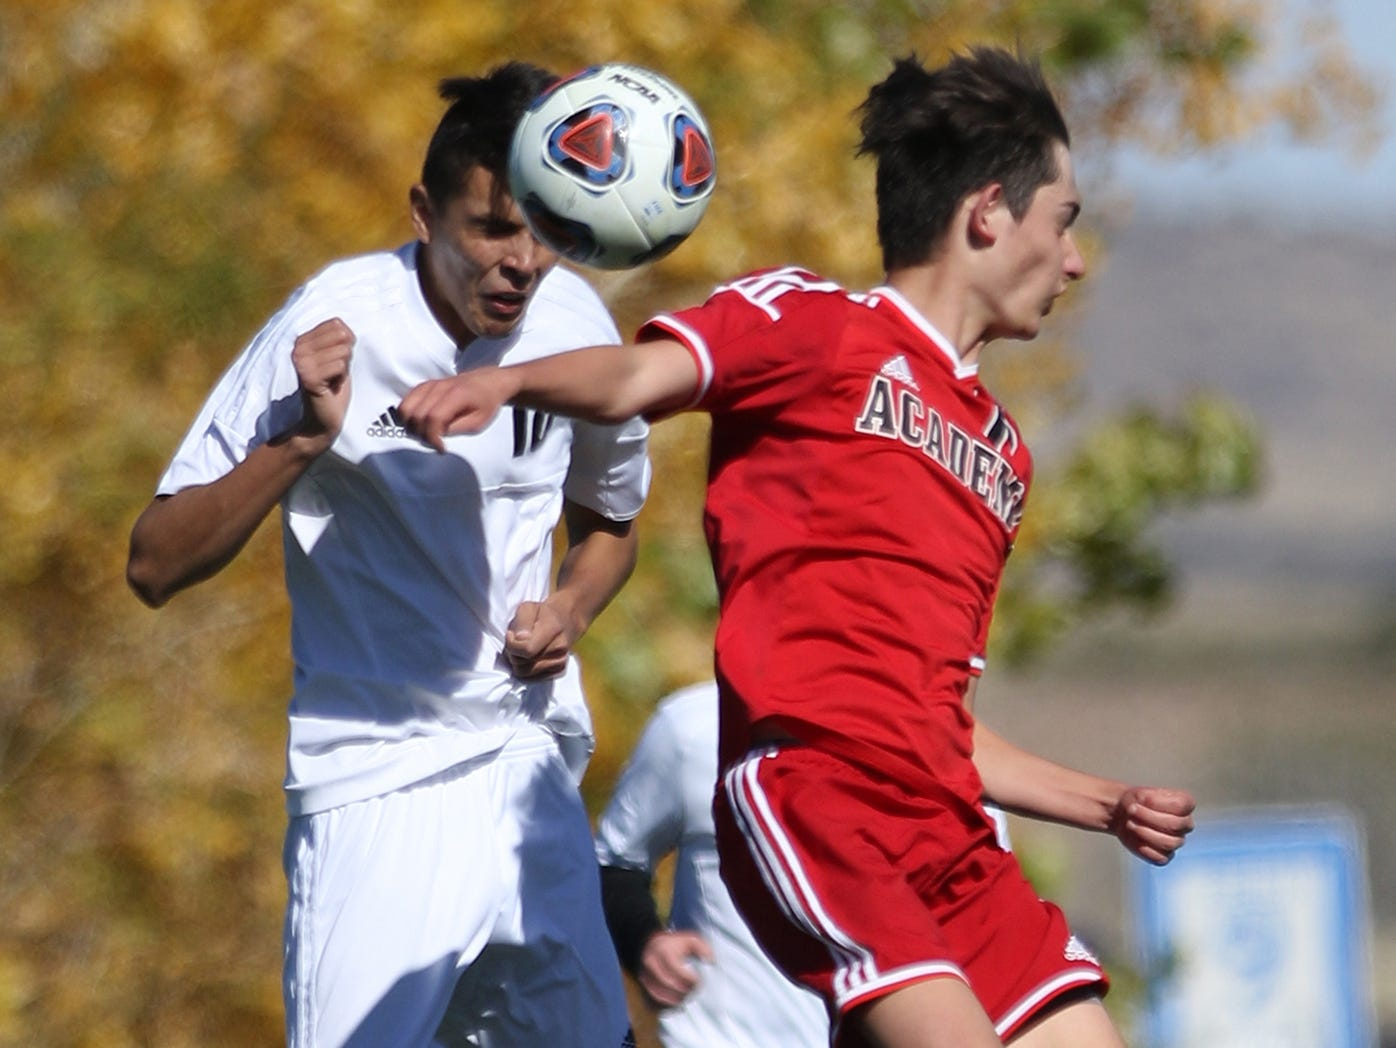 Aztec's Karson Adcock head bumps the ball away from Albuquerque Academy's Neven Zapatka during Wednesday's 4A state quarterfinals in Bernalillo.